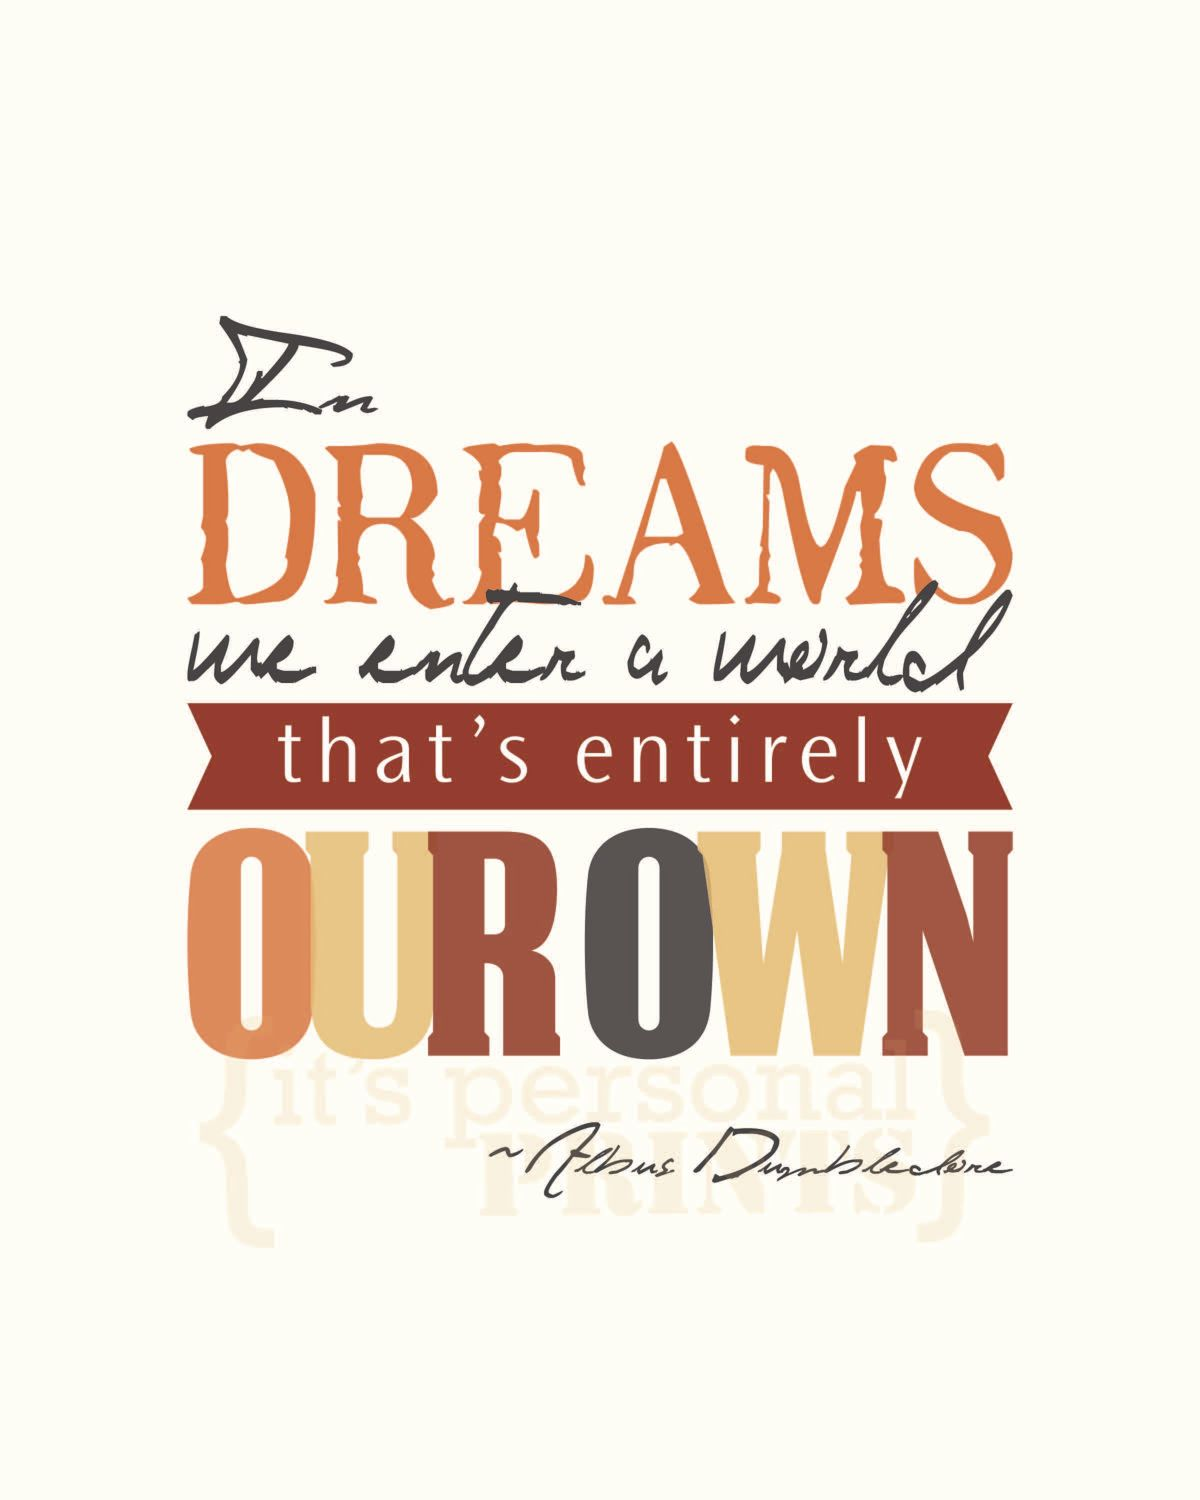 Harry Potter Dream Quote By Dumbledore Love The Gryffindor Colors